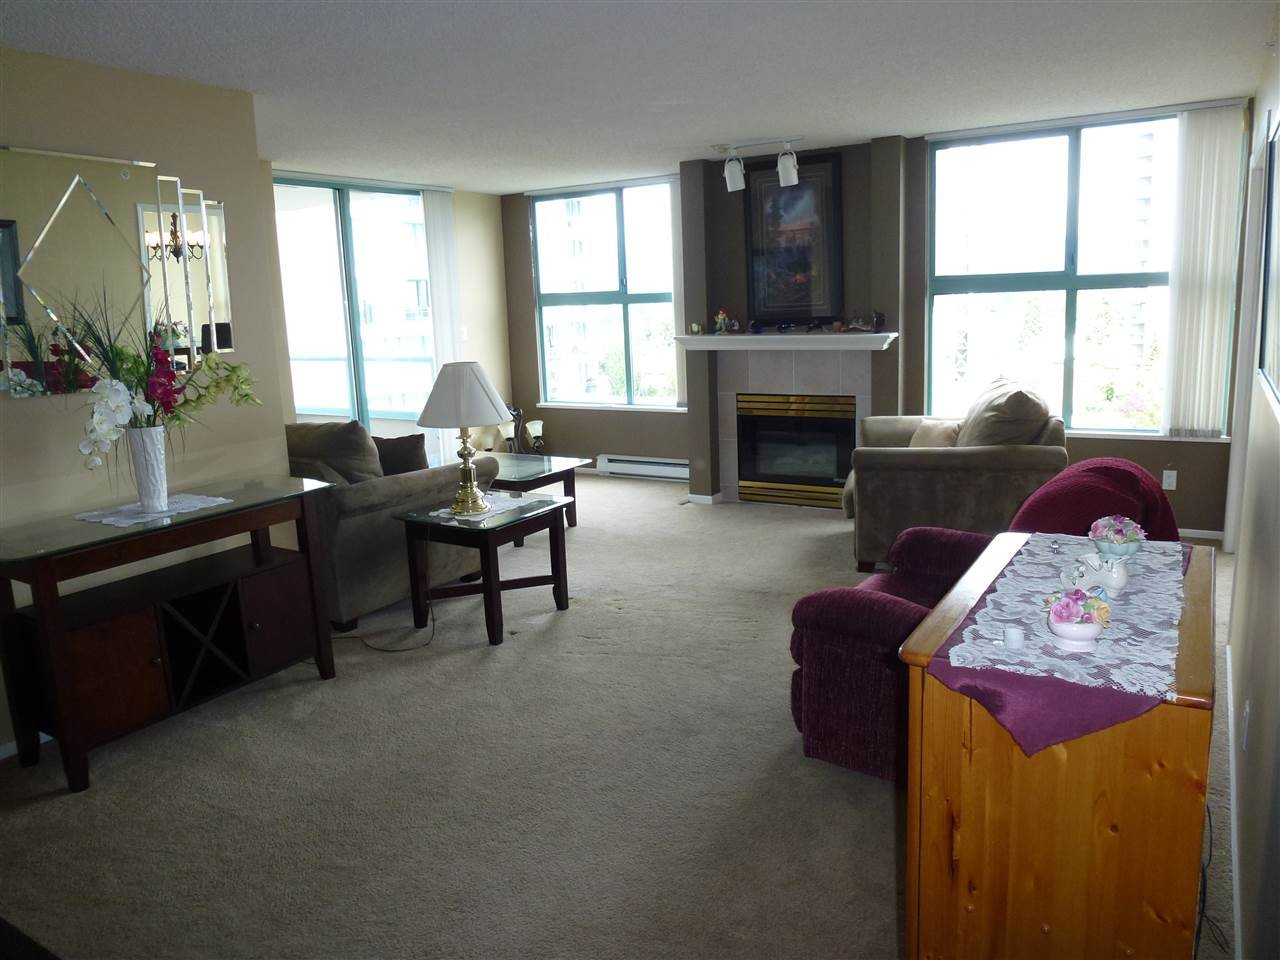 Photo 19: Photos: 904 728 PRINCESS Street in New Westminster: Uptown NW Condo for sale : MLS®# R2090233